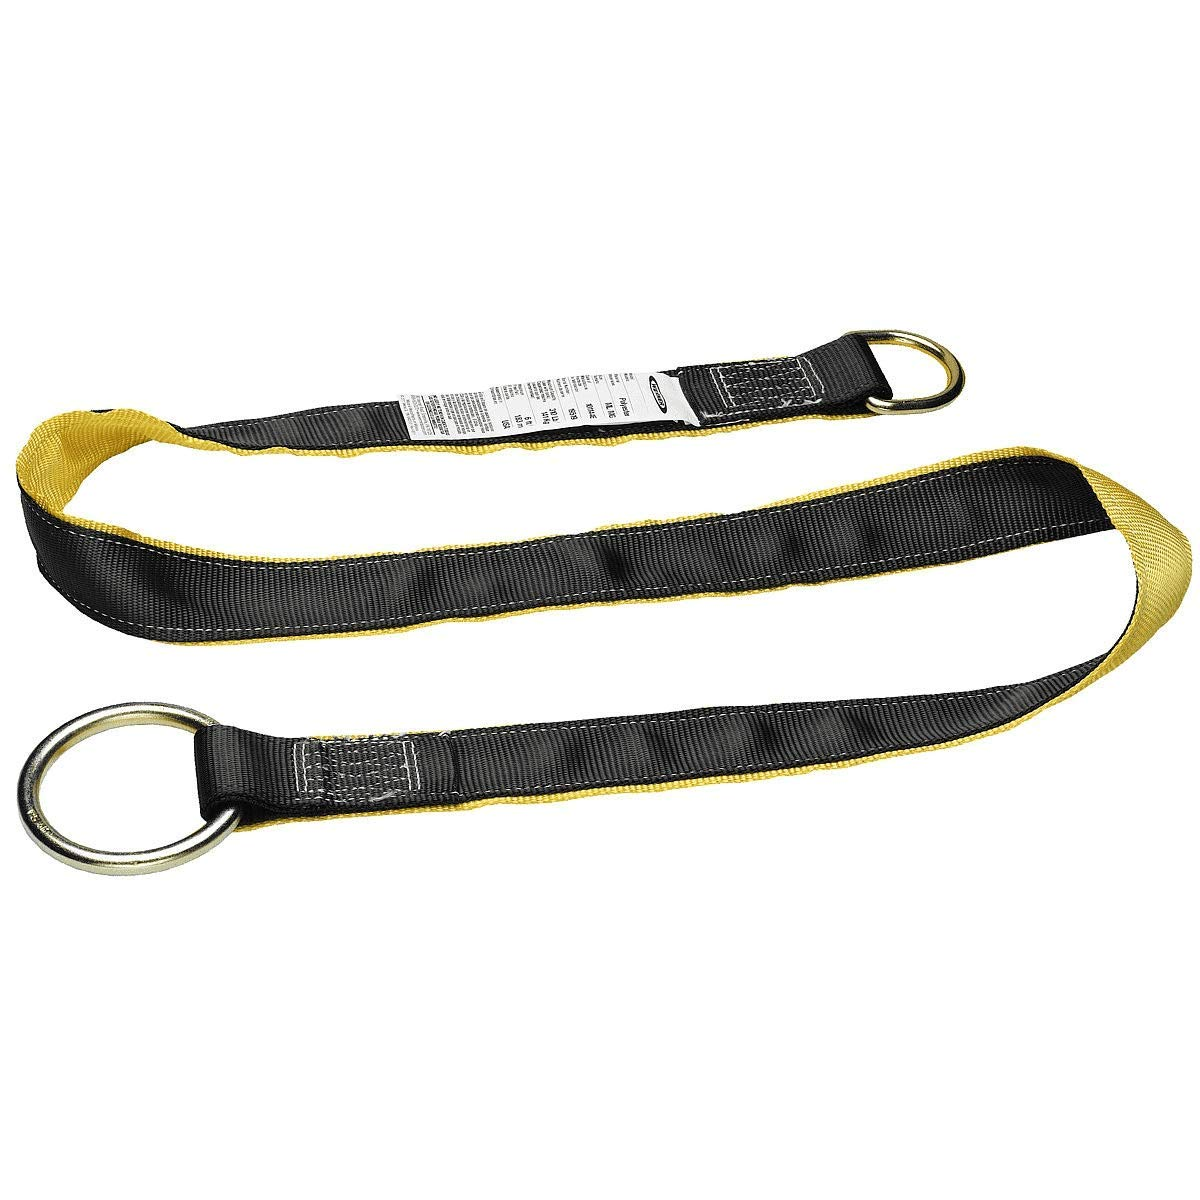 A111003 Cross Arm Strap Werner